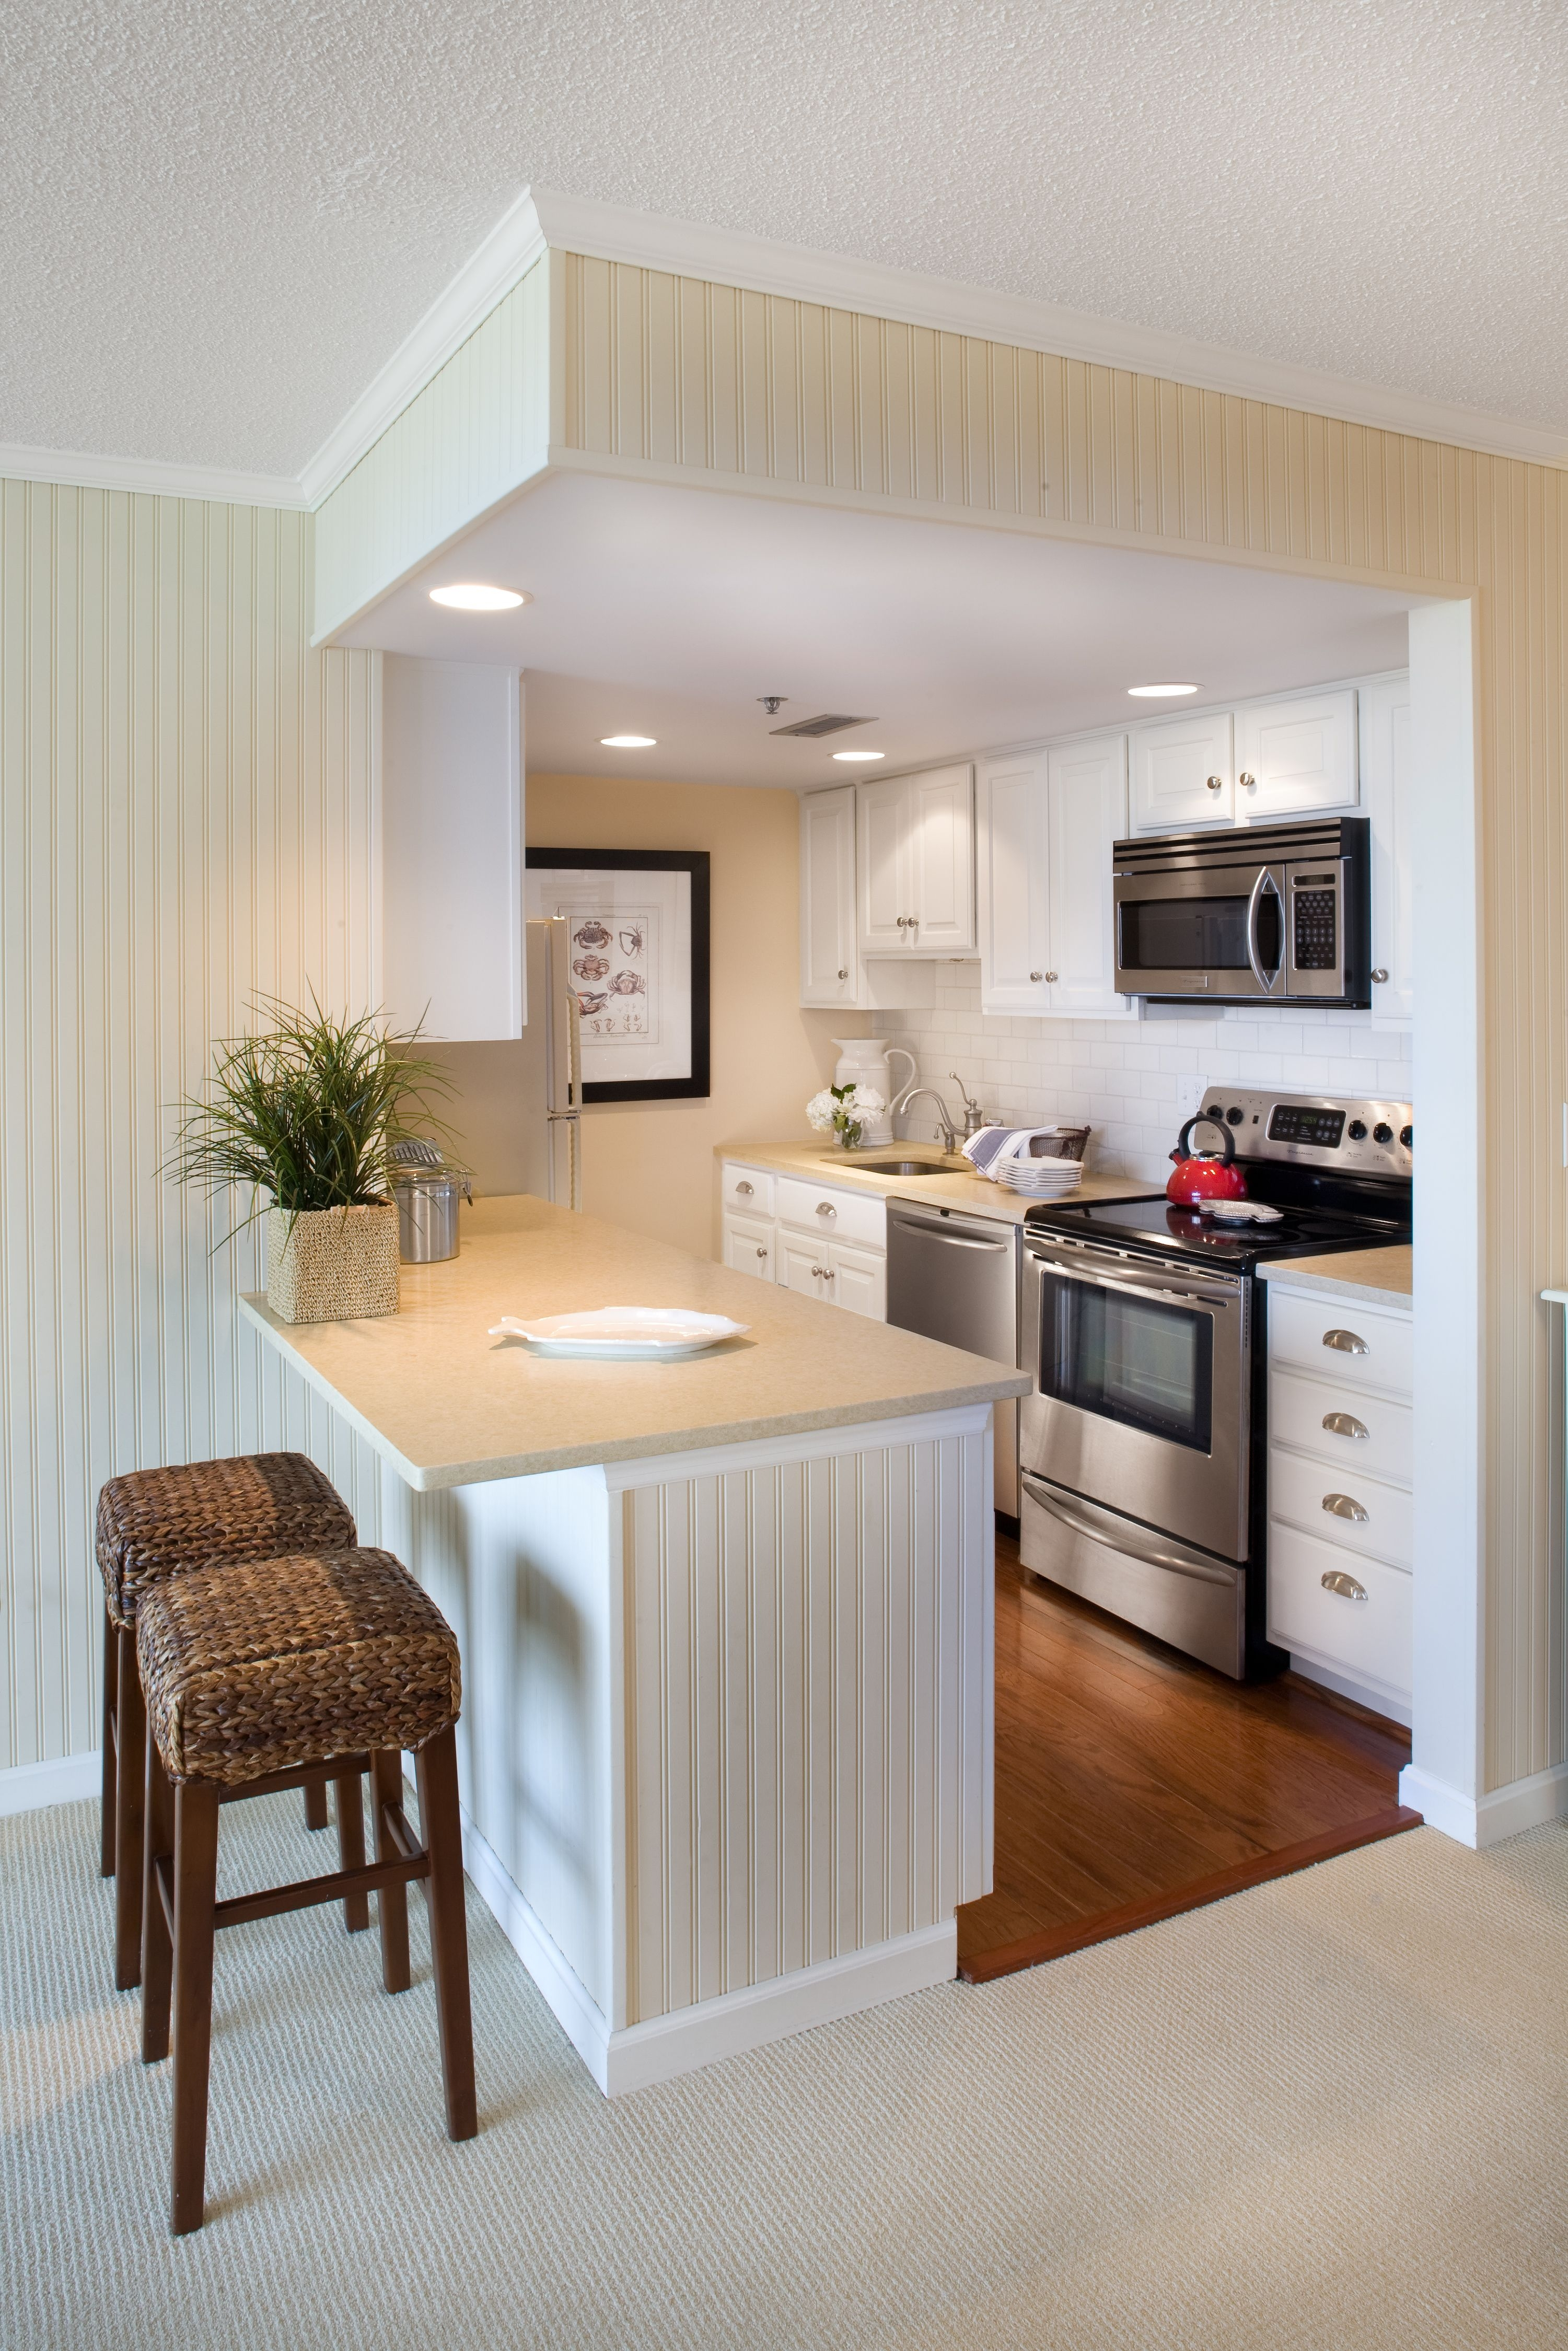 small but perfect for this beach front condo kitchen designed